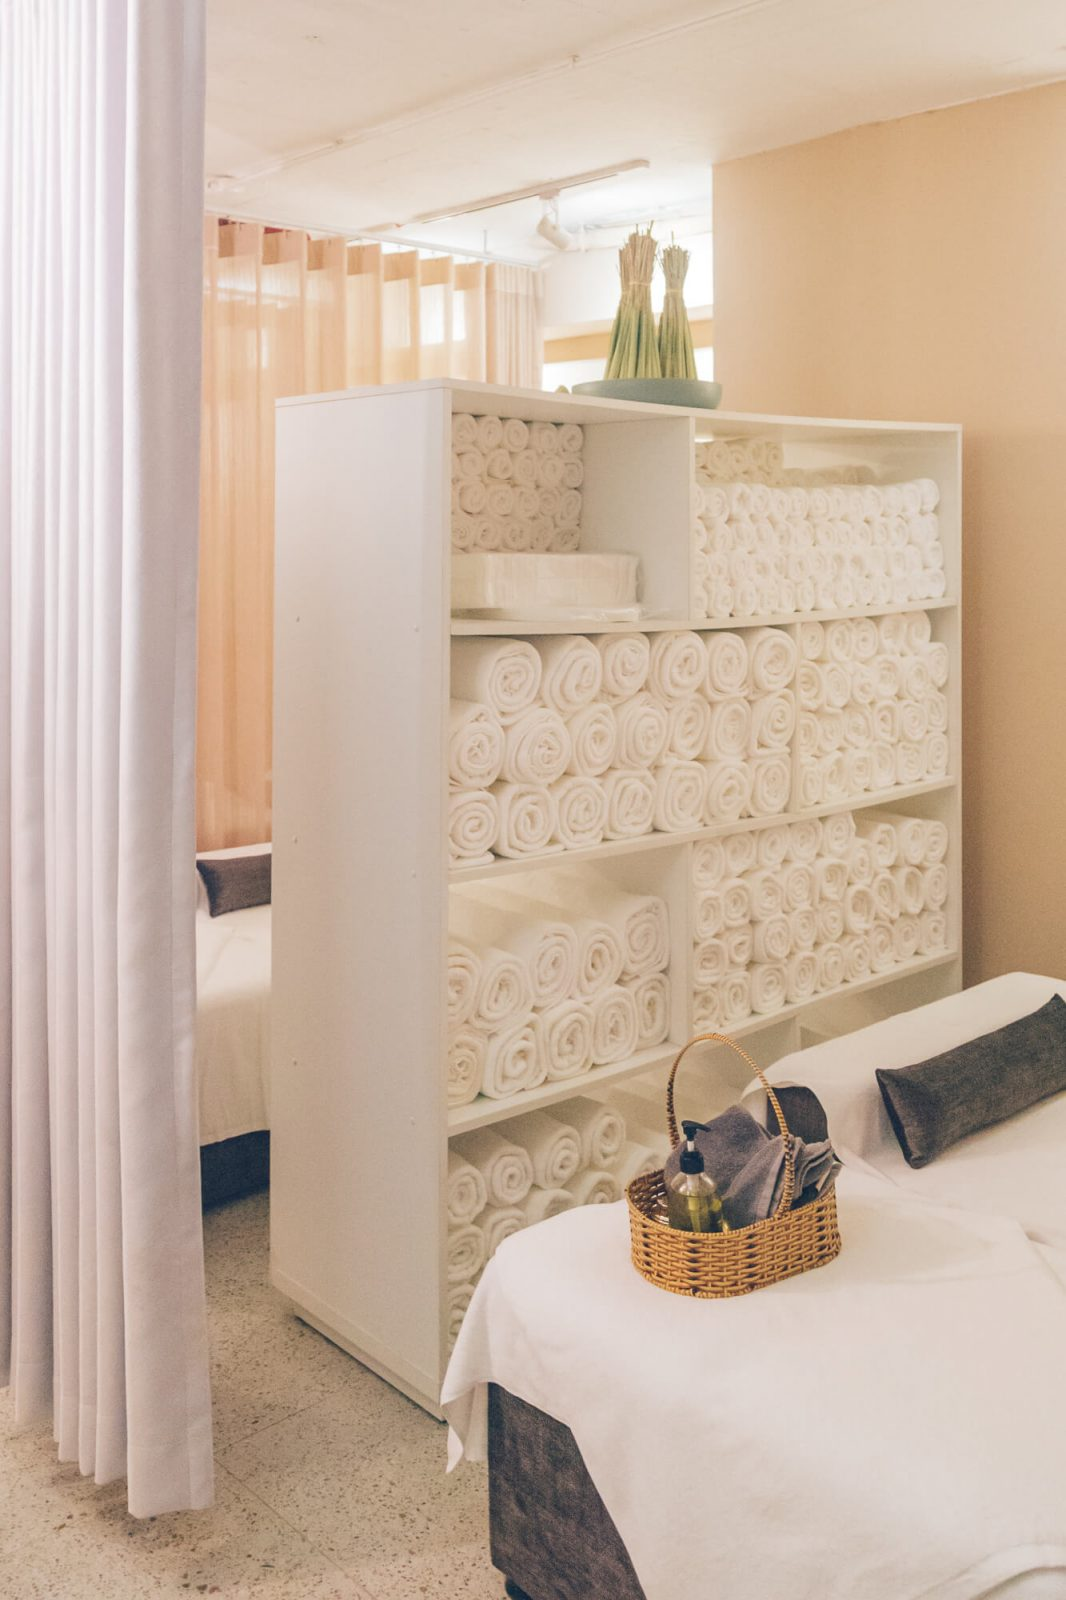 Nu Spa, Odys Boutique Hotel, Ho Chi Minh City, Vietnam